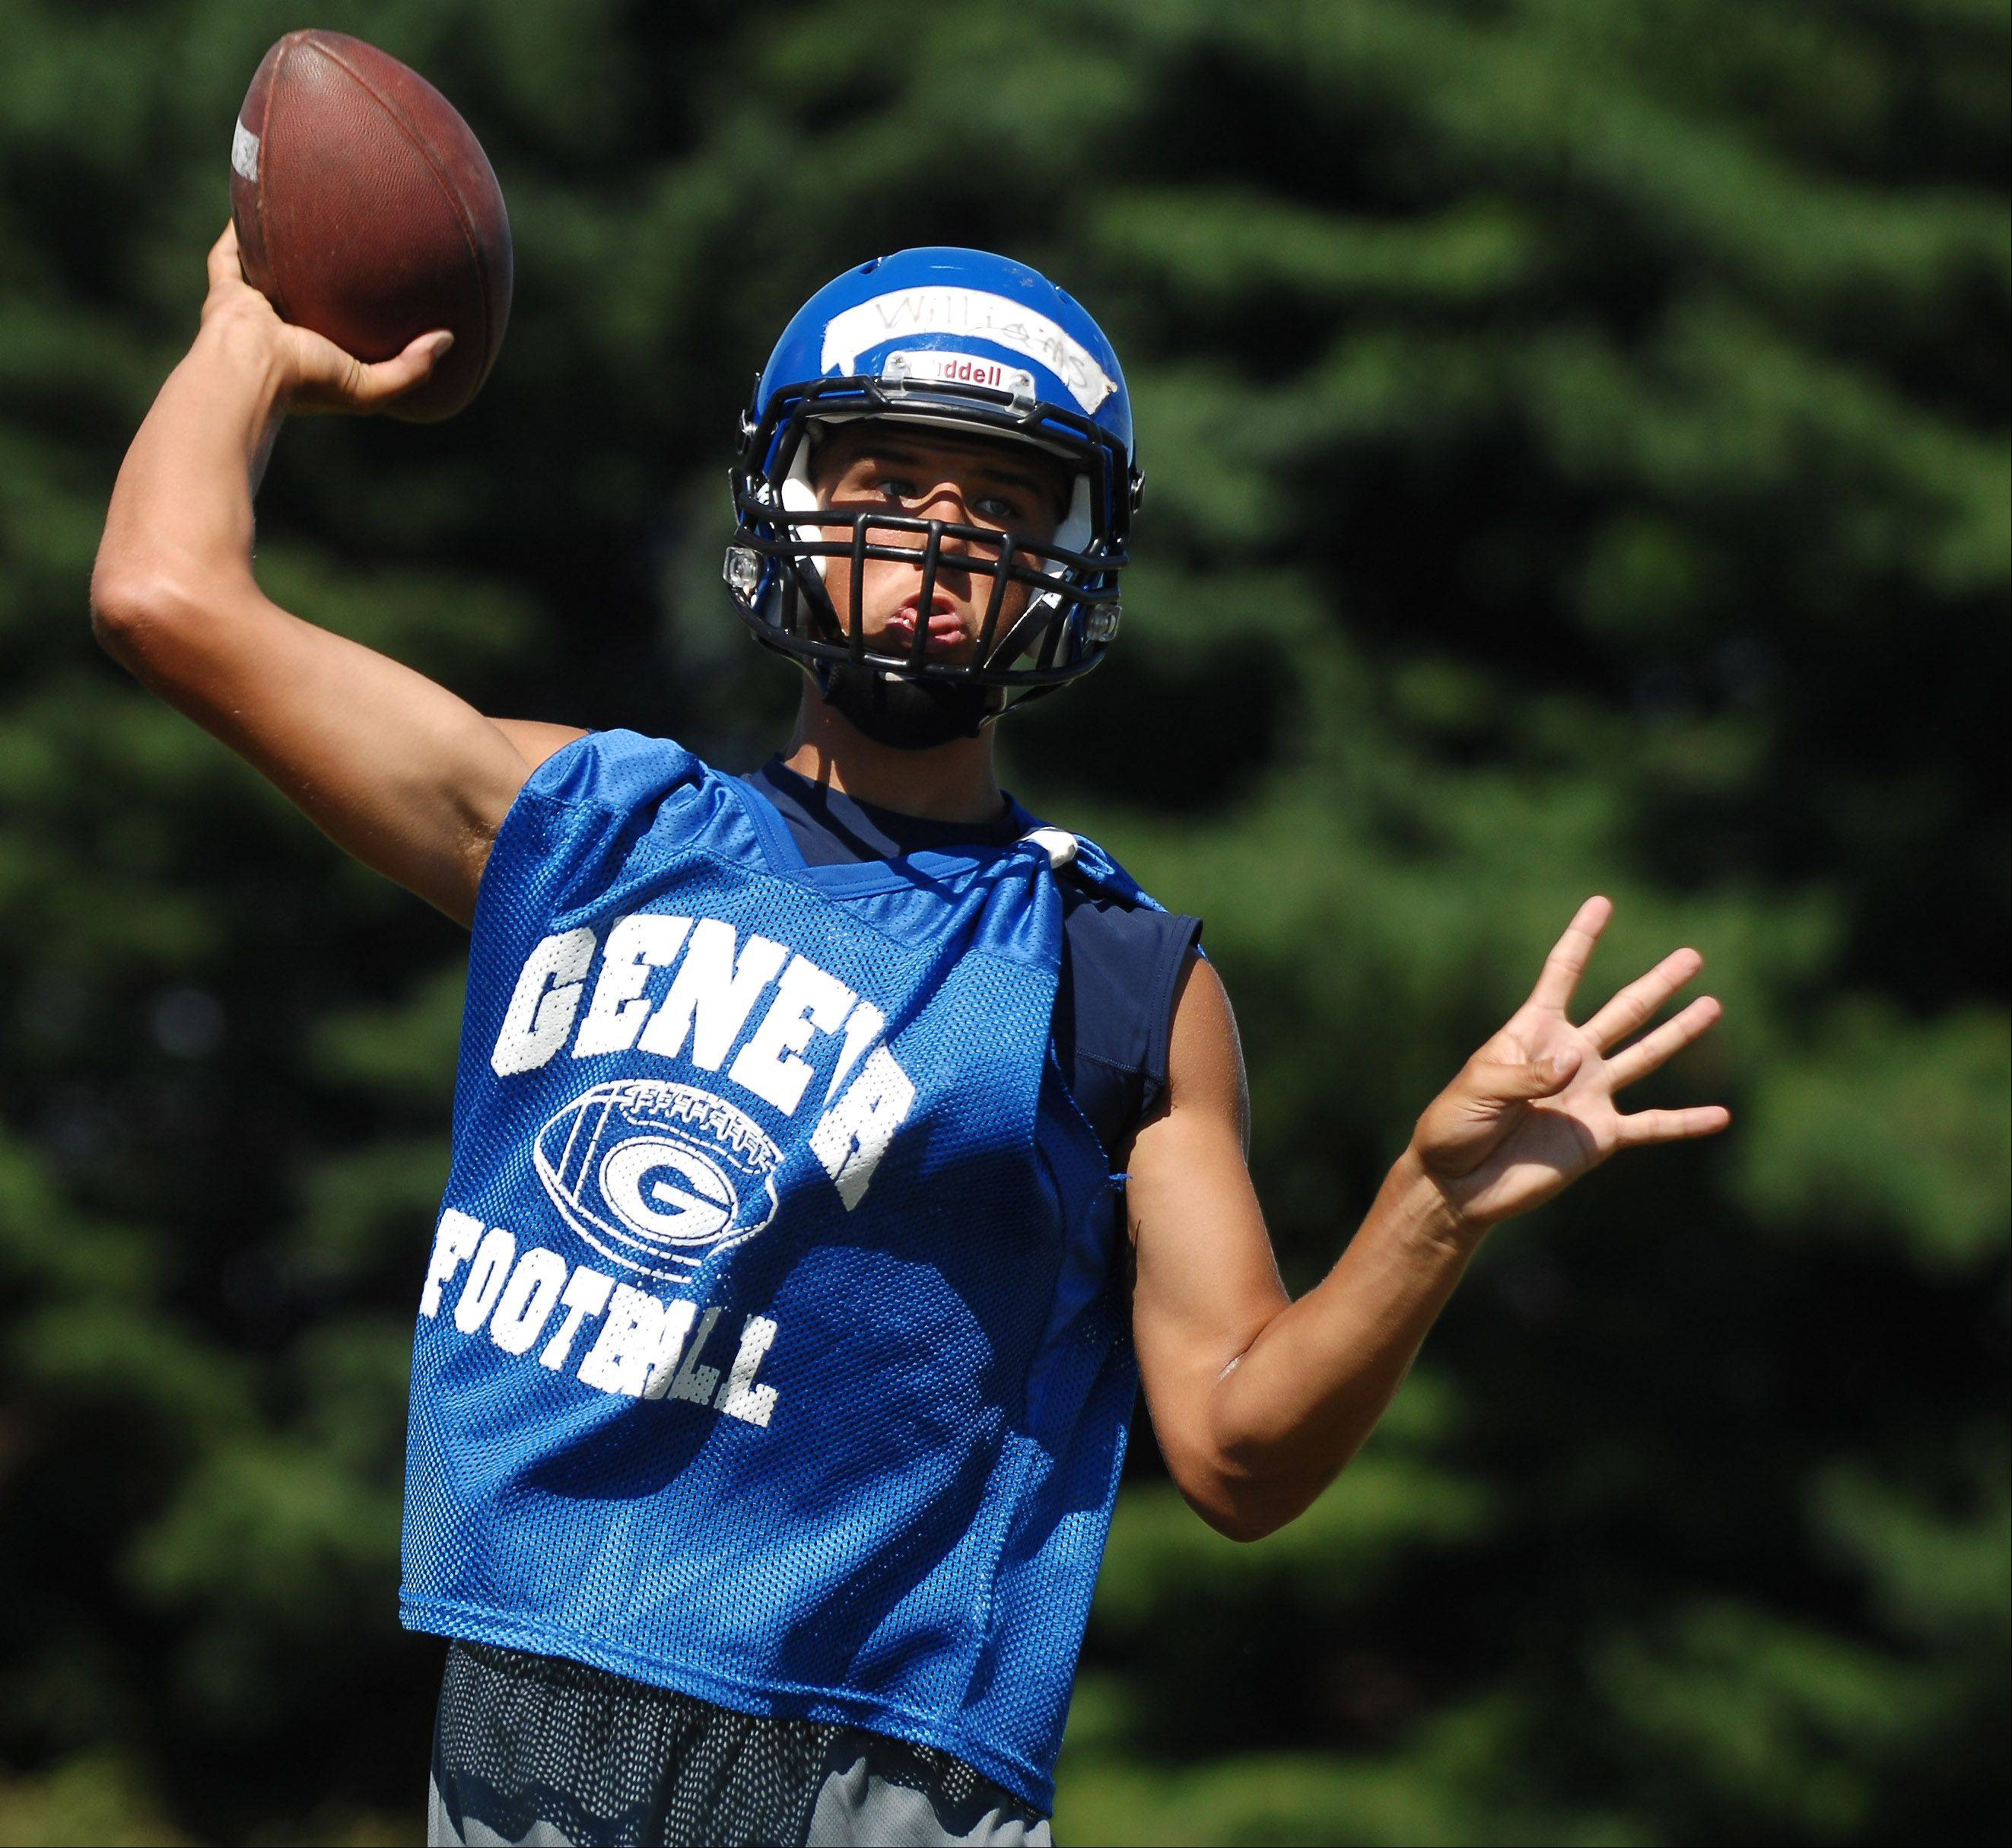 Quarterback Matt Williams fires a pass during the first day of football practice for Geneva High School at the former Broadview Academy site in La Fox Wednesday.